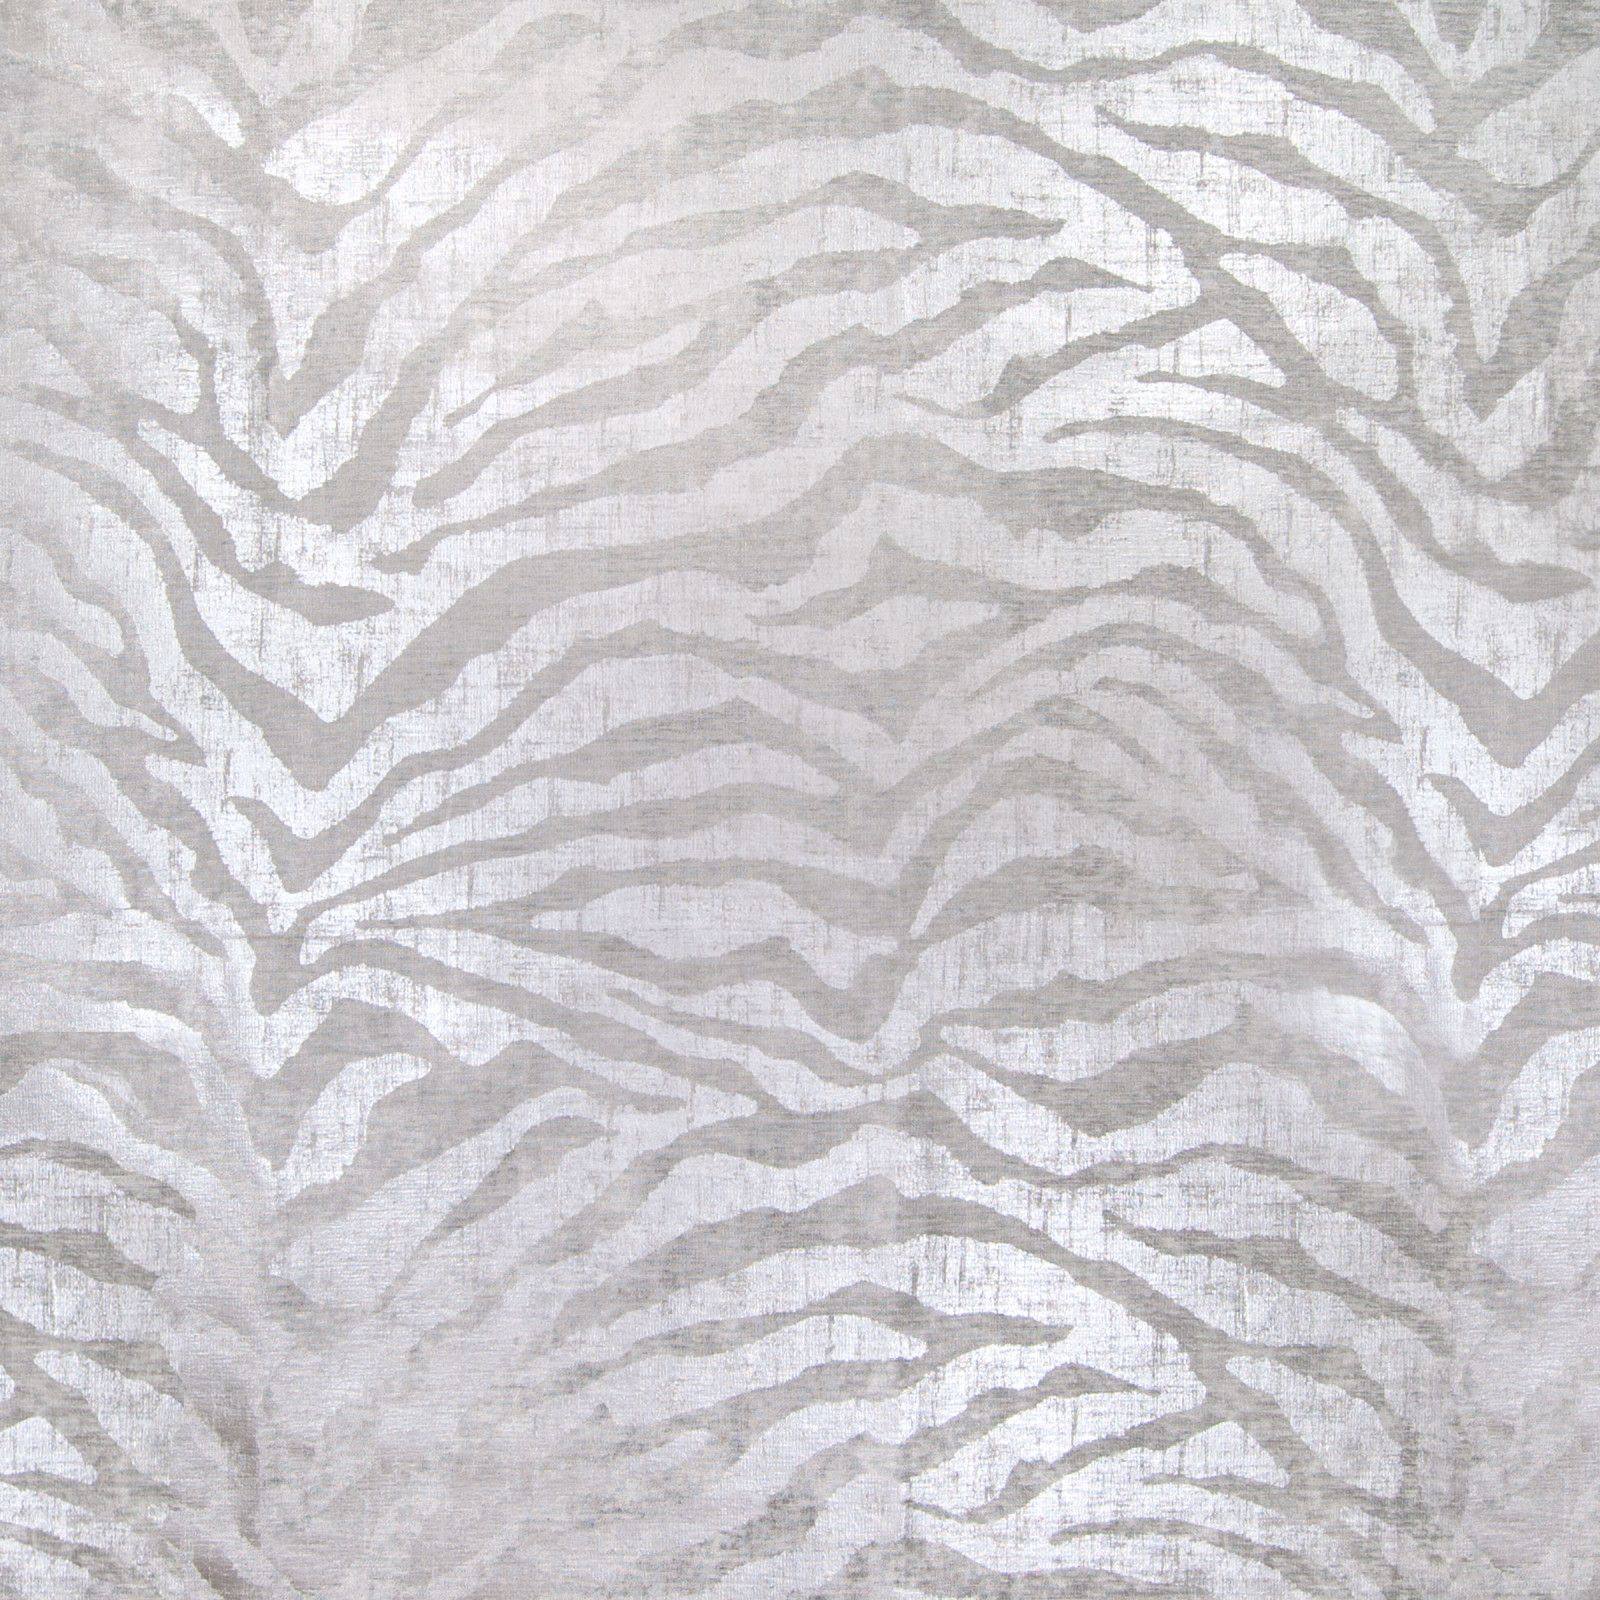 Silver Gray Metallic Chenille Upholstery Fabric Greenhouse Fabrics Fabric Window Treatments Upholstery Fabric